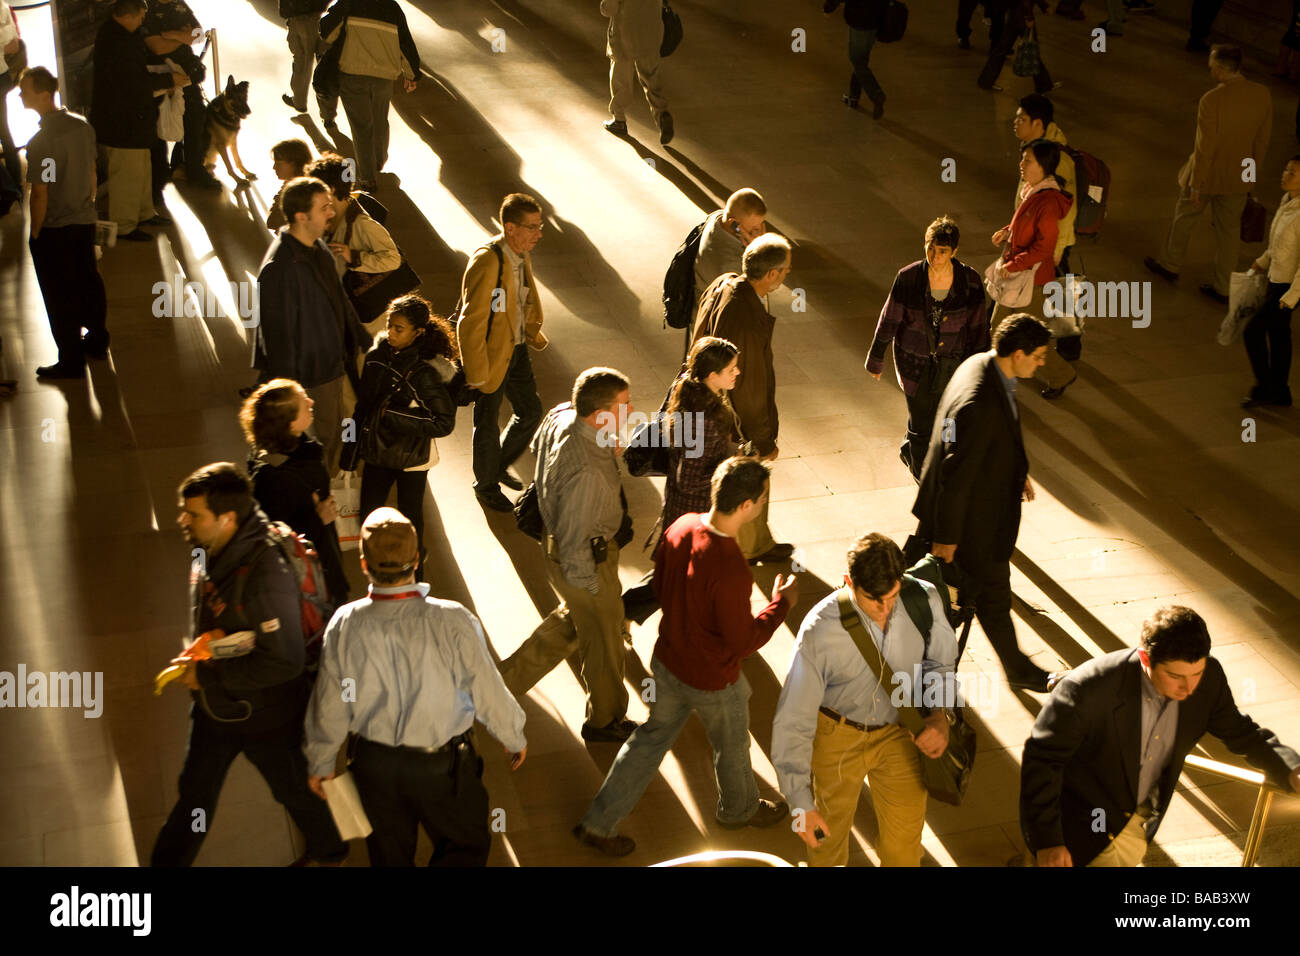 Morning commuter rush hour at Grand Central Station in New York City - Stock Image